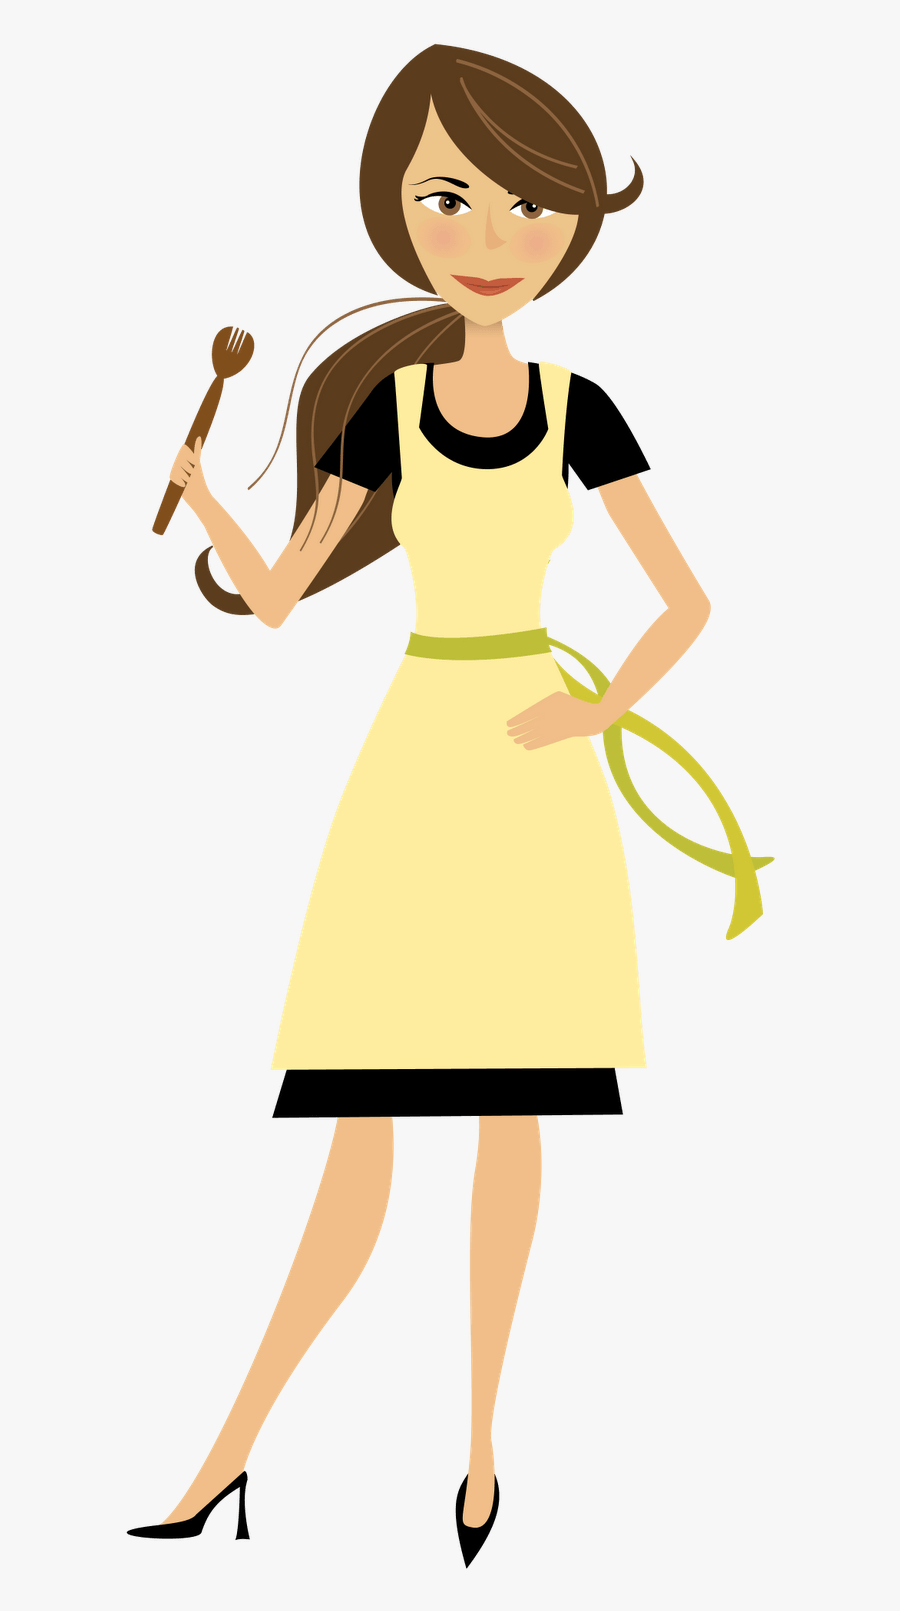 Cooking Mom Clipart - Transparent Background Cartoon Woman ...